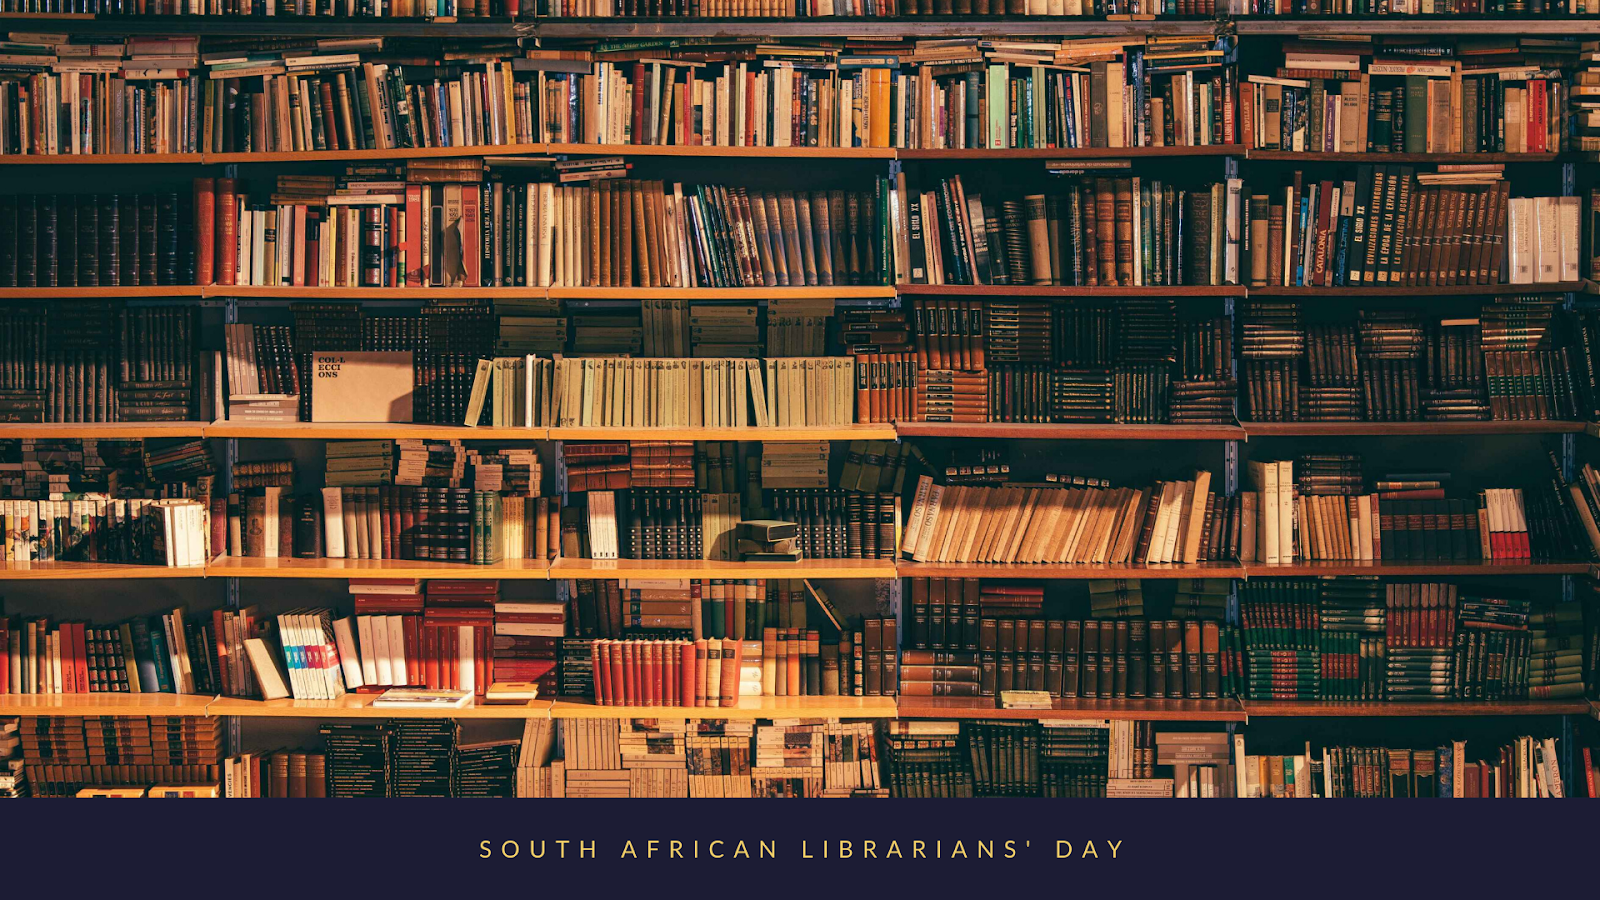 South African Librarians' Day